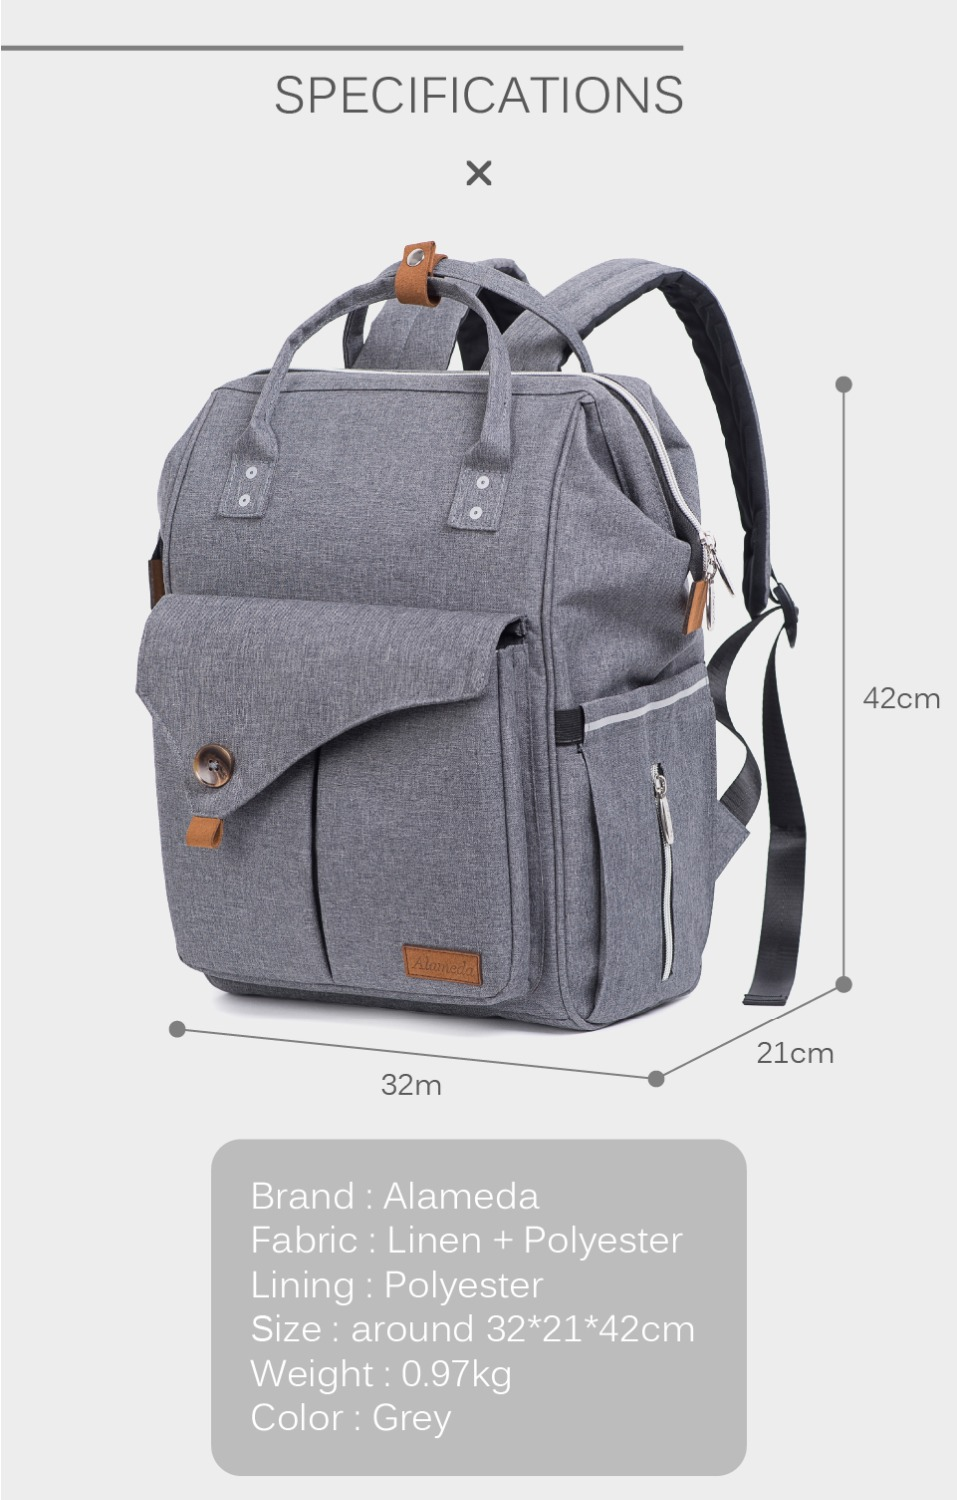 HTB1XHwTlRnTBKNjSZPfq6zf1XXaL Alameda Fashion Mummy Maternity Bag Multi-function Diaper Bag Backpack Nappy Baby Bag with Stroller Straps for Baby Care